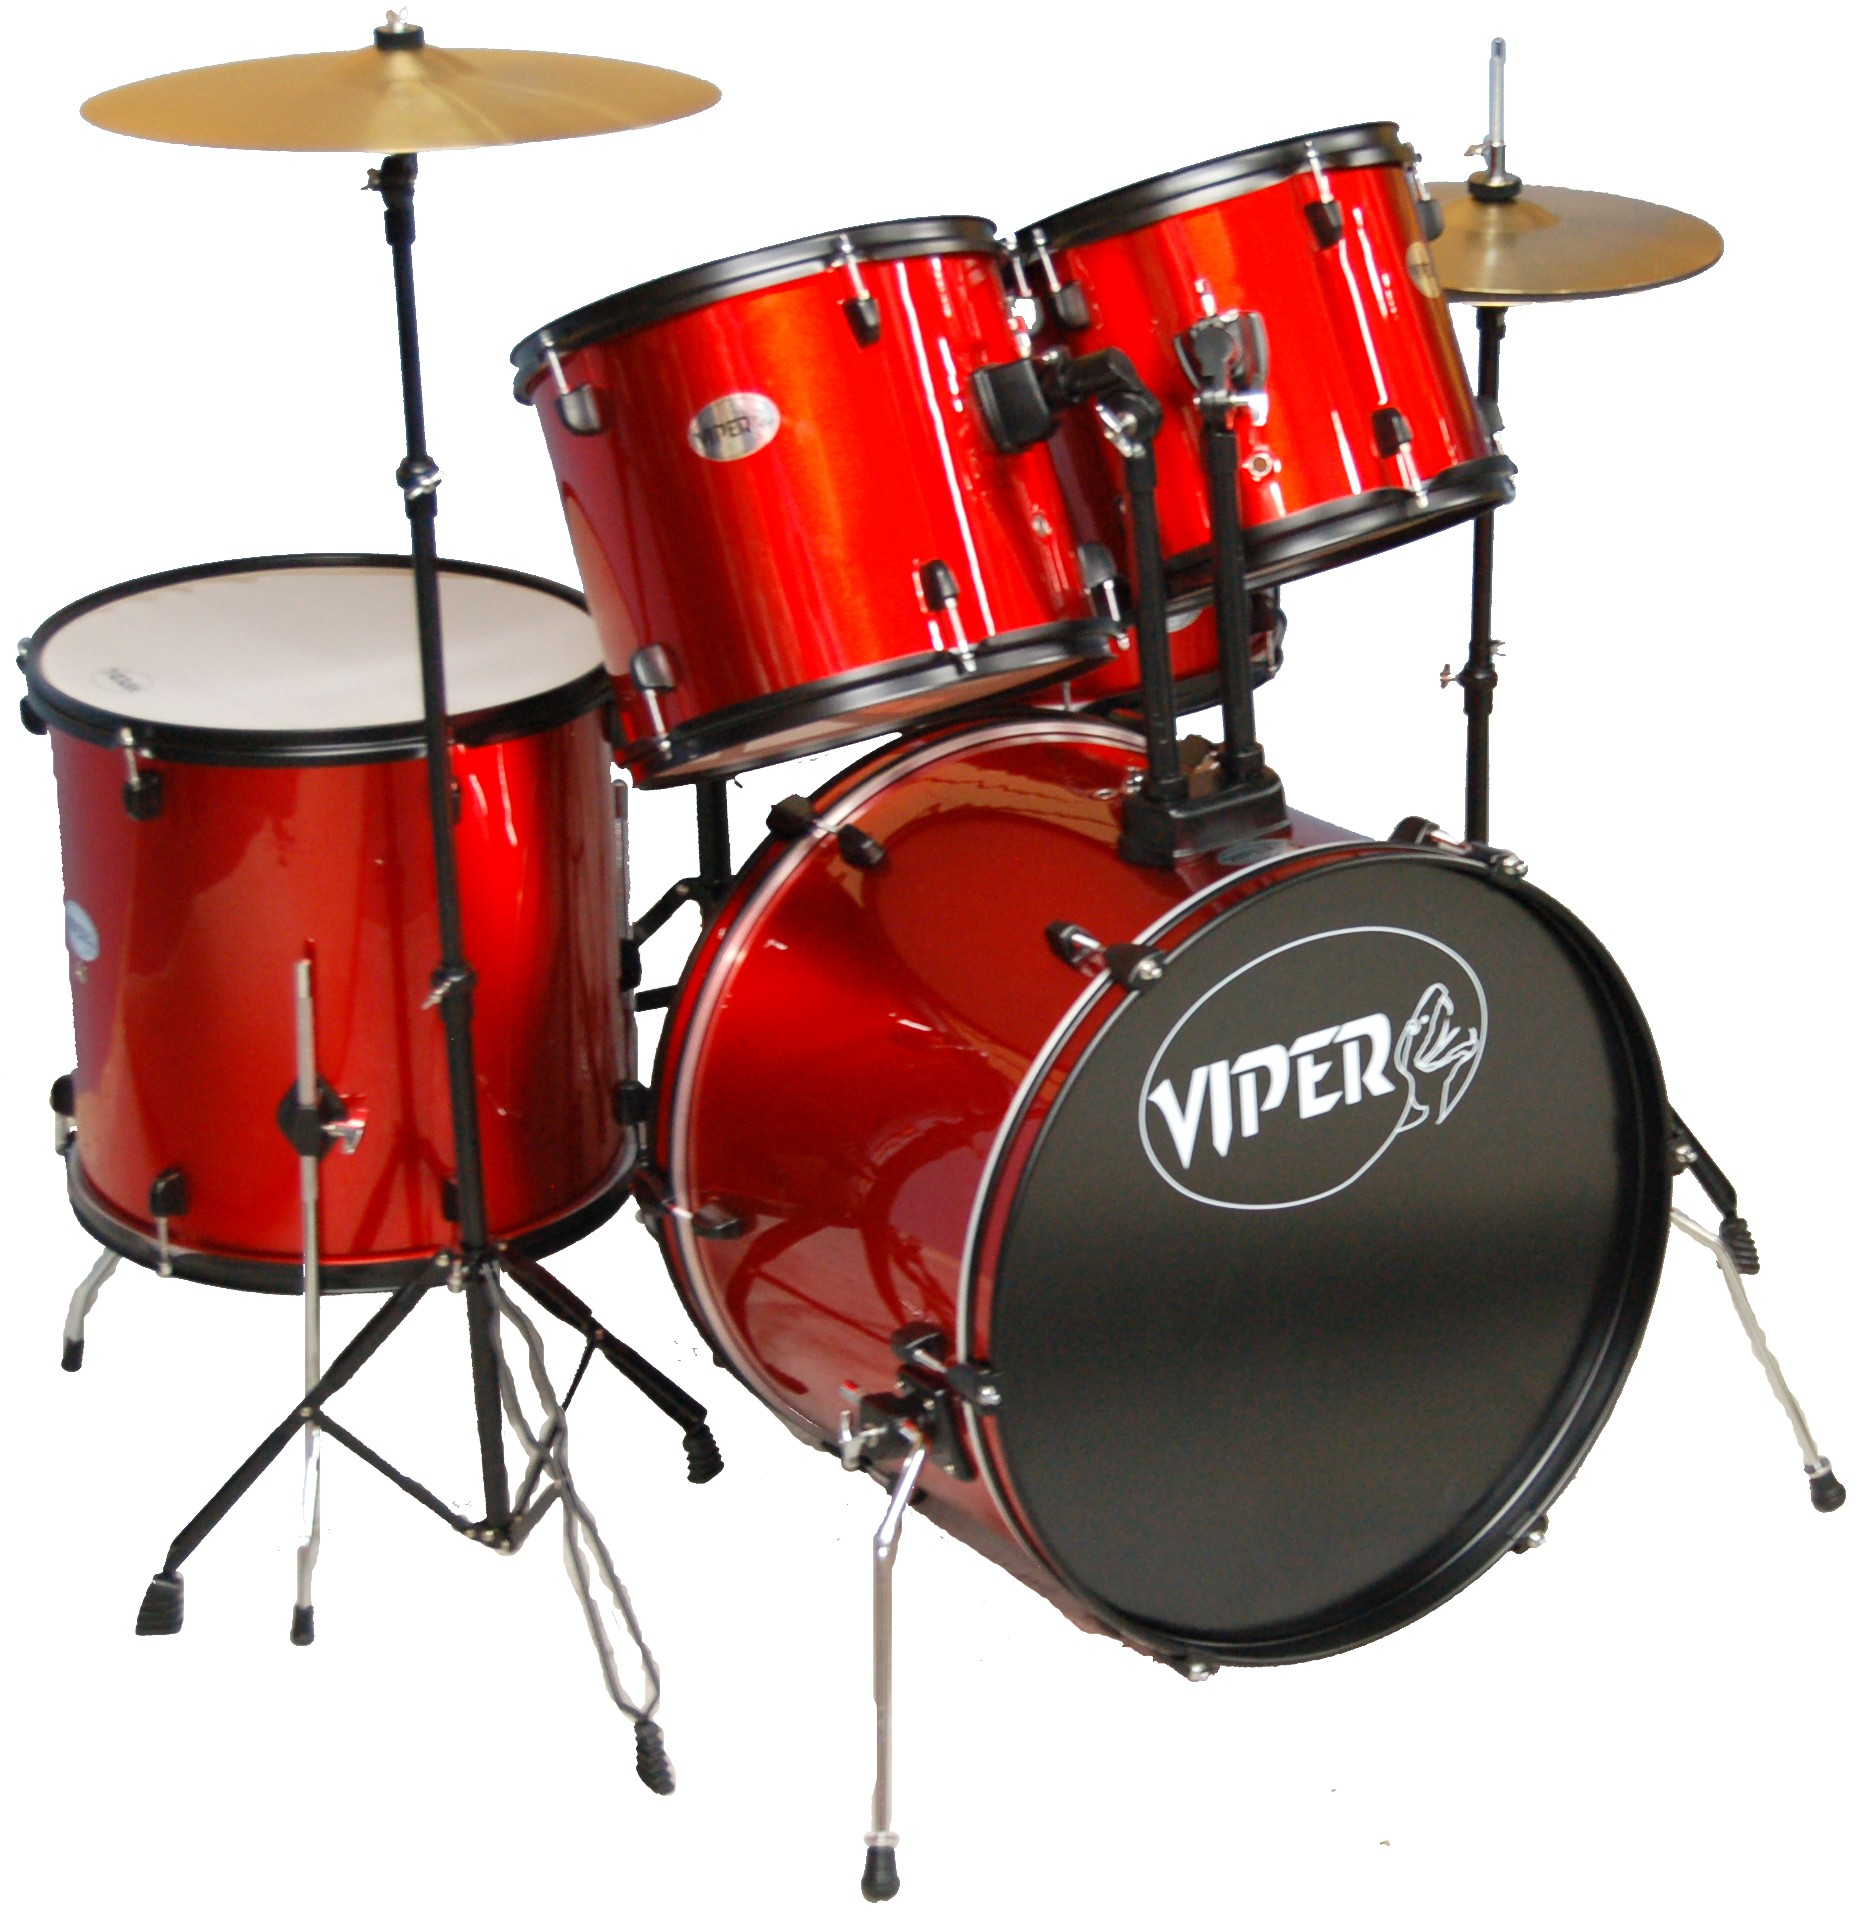 VIPER STUDENT DRUM SET METALLIC RED